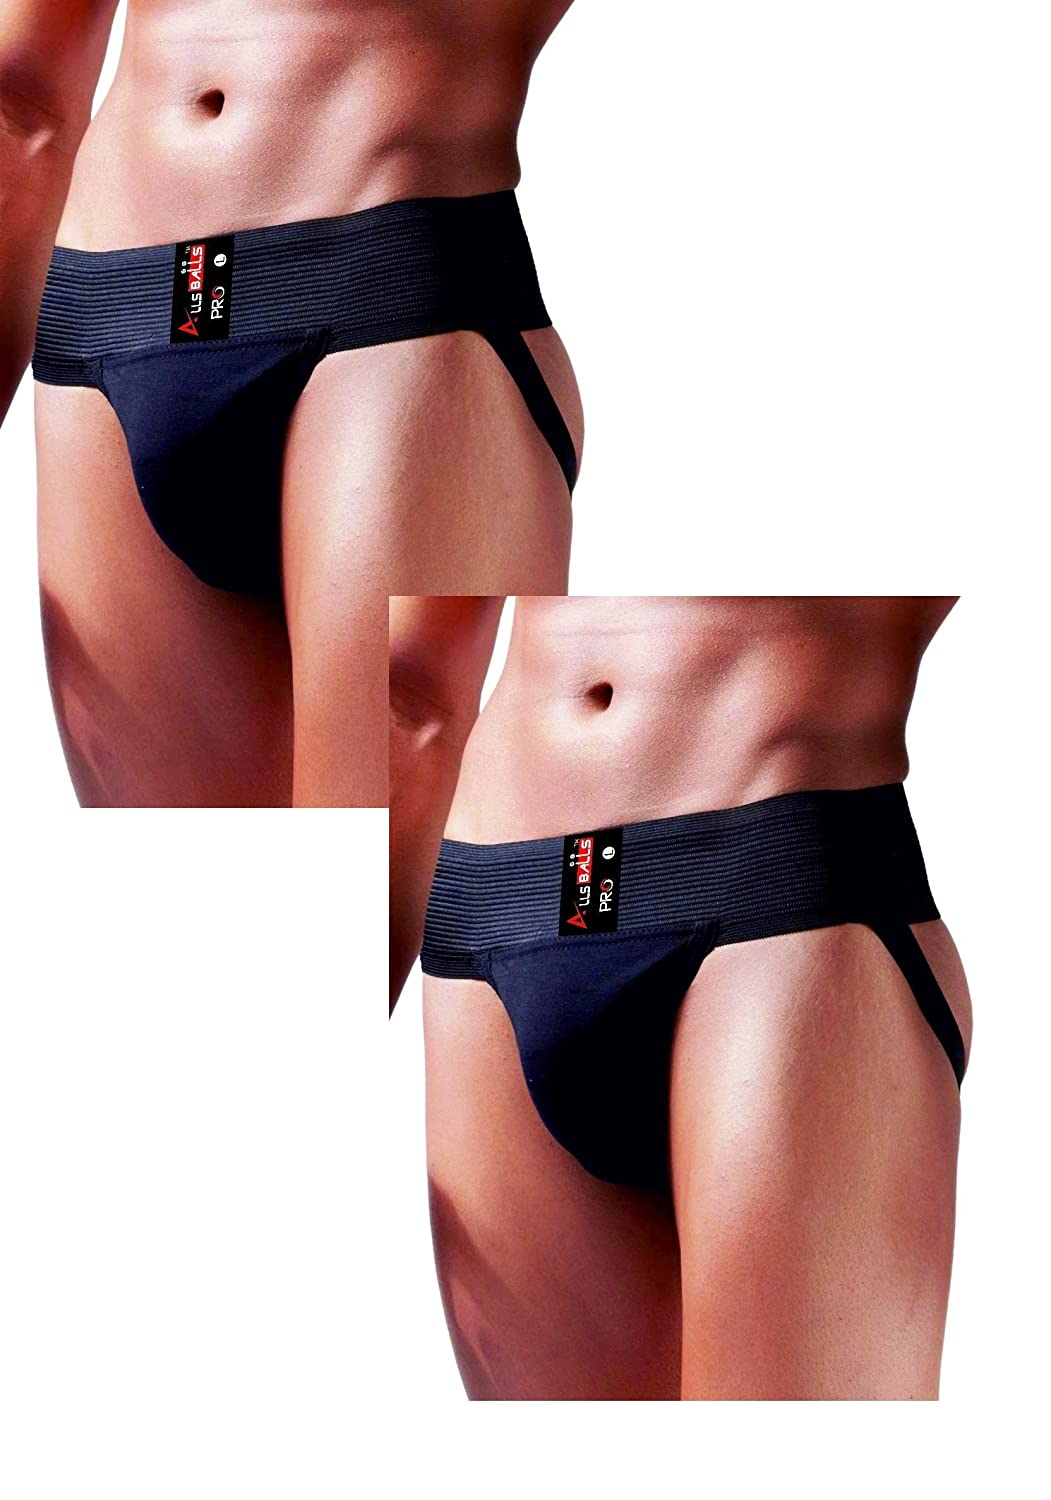 AllsBalls Jockstrap Gym Cotton Supporter with Cup Pocket Gym Fitness /& Outdoor Inner Wear Soft Underpants